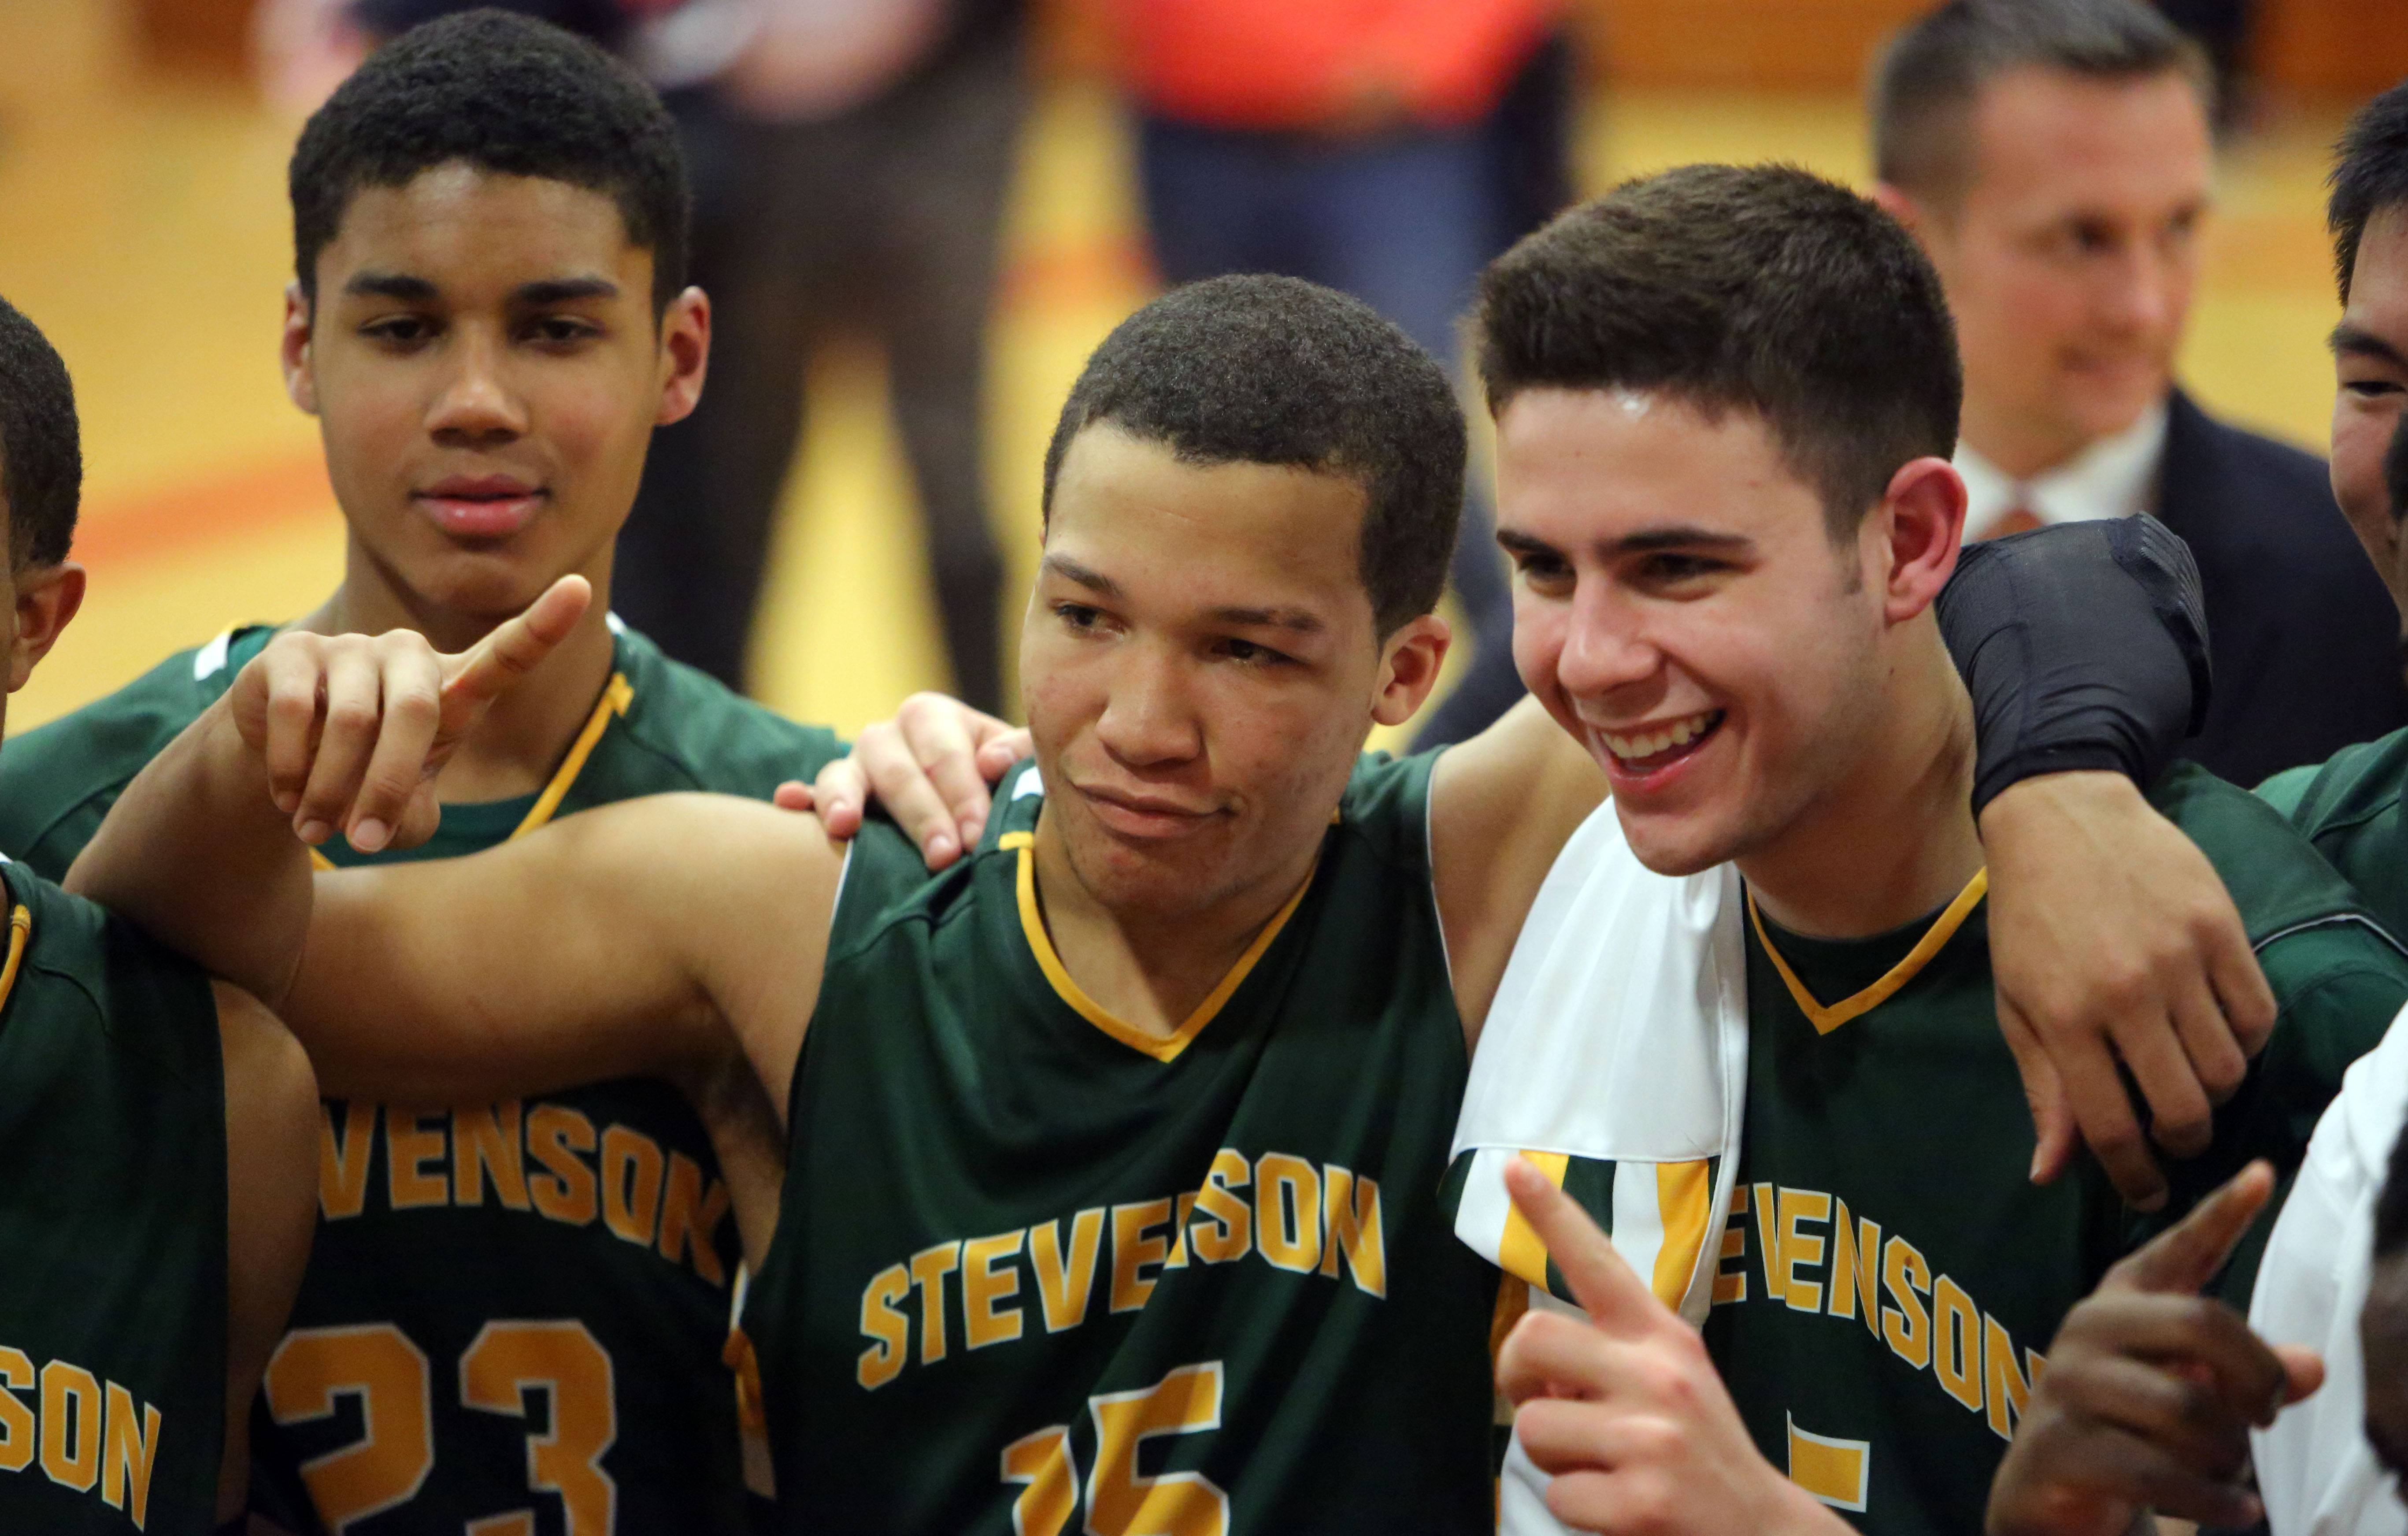 Stevenson's Jalen Brunson, left, and Parker Nichols give the number one sign as they pose for pictures after their blowout win over North Chicago in the North Suburban Conference championship game Wednesday night at North Chicago High School.